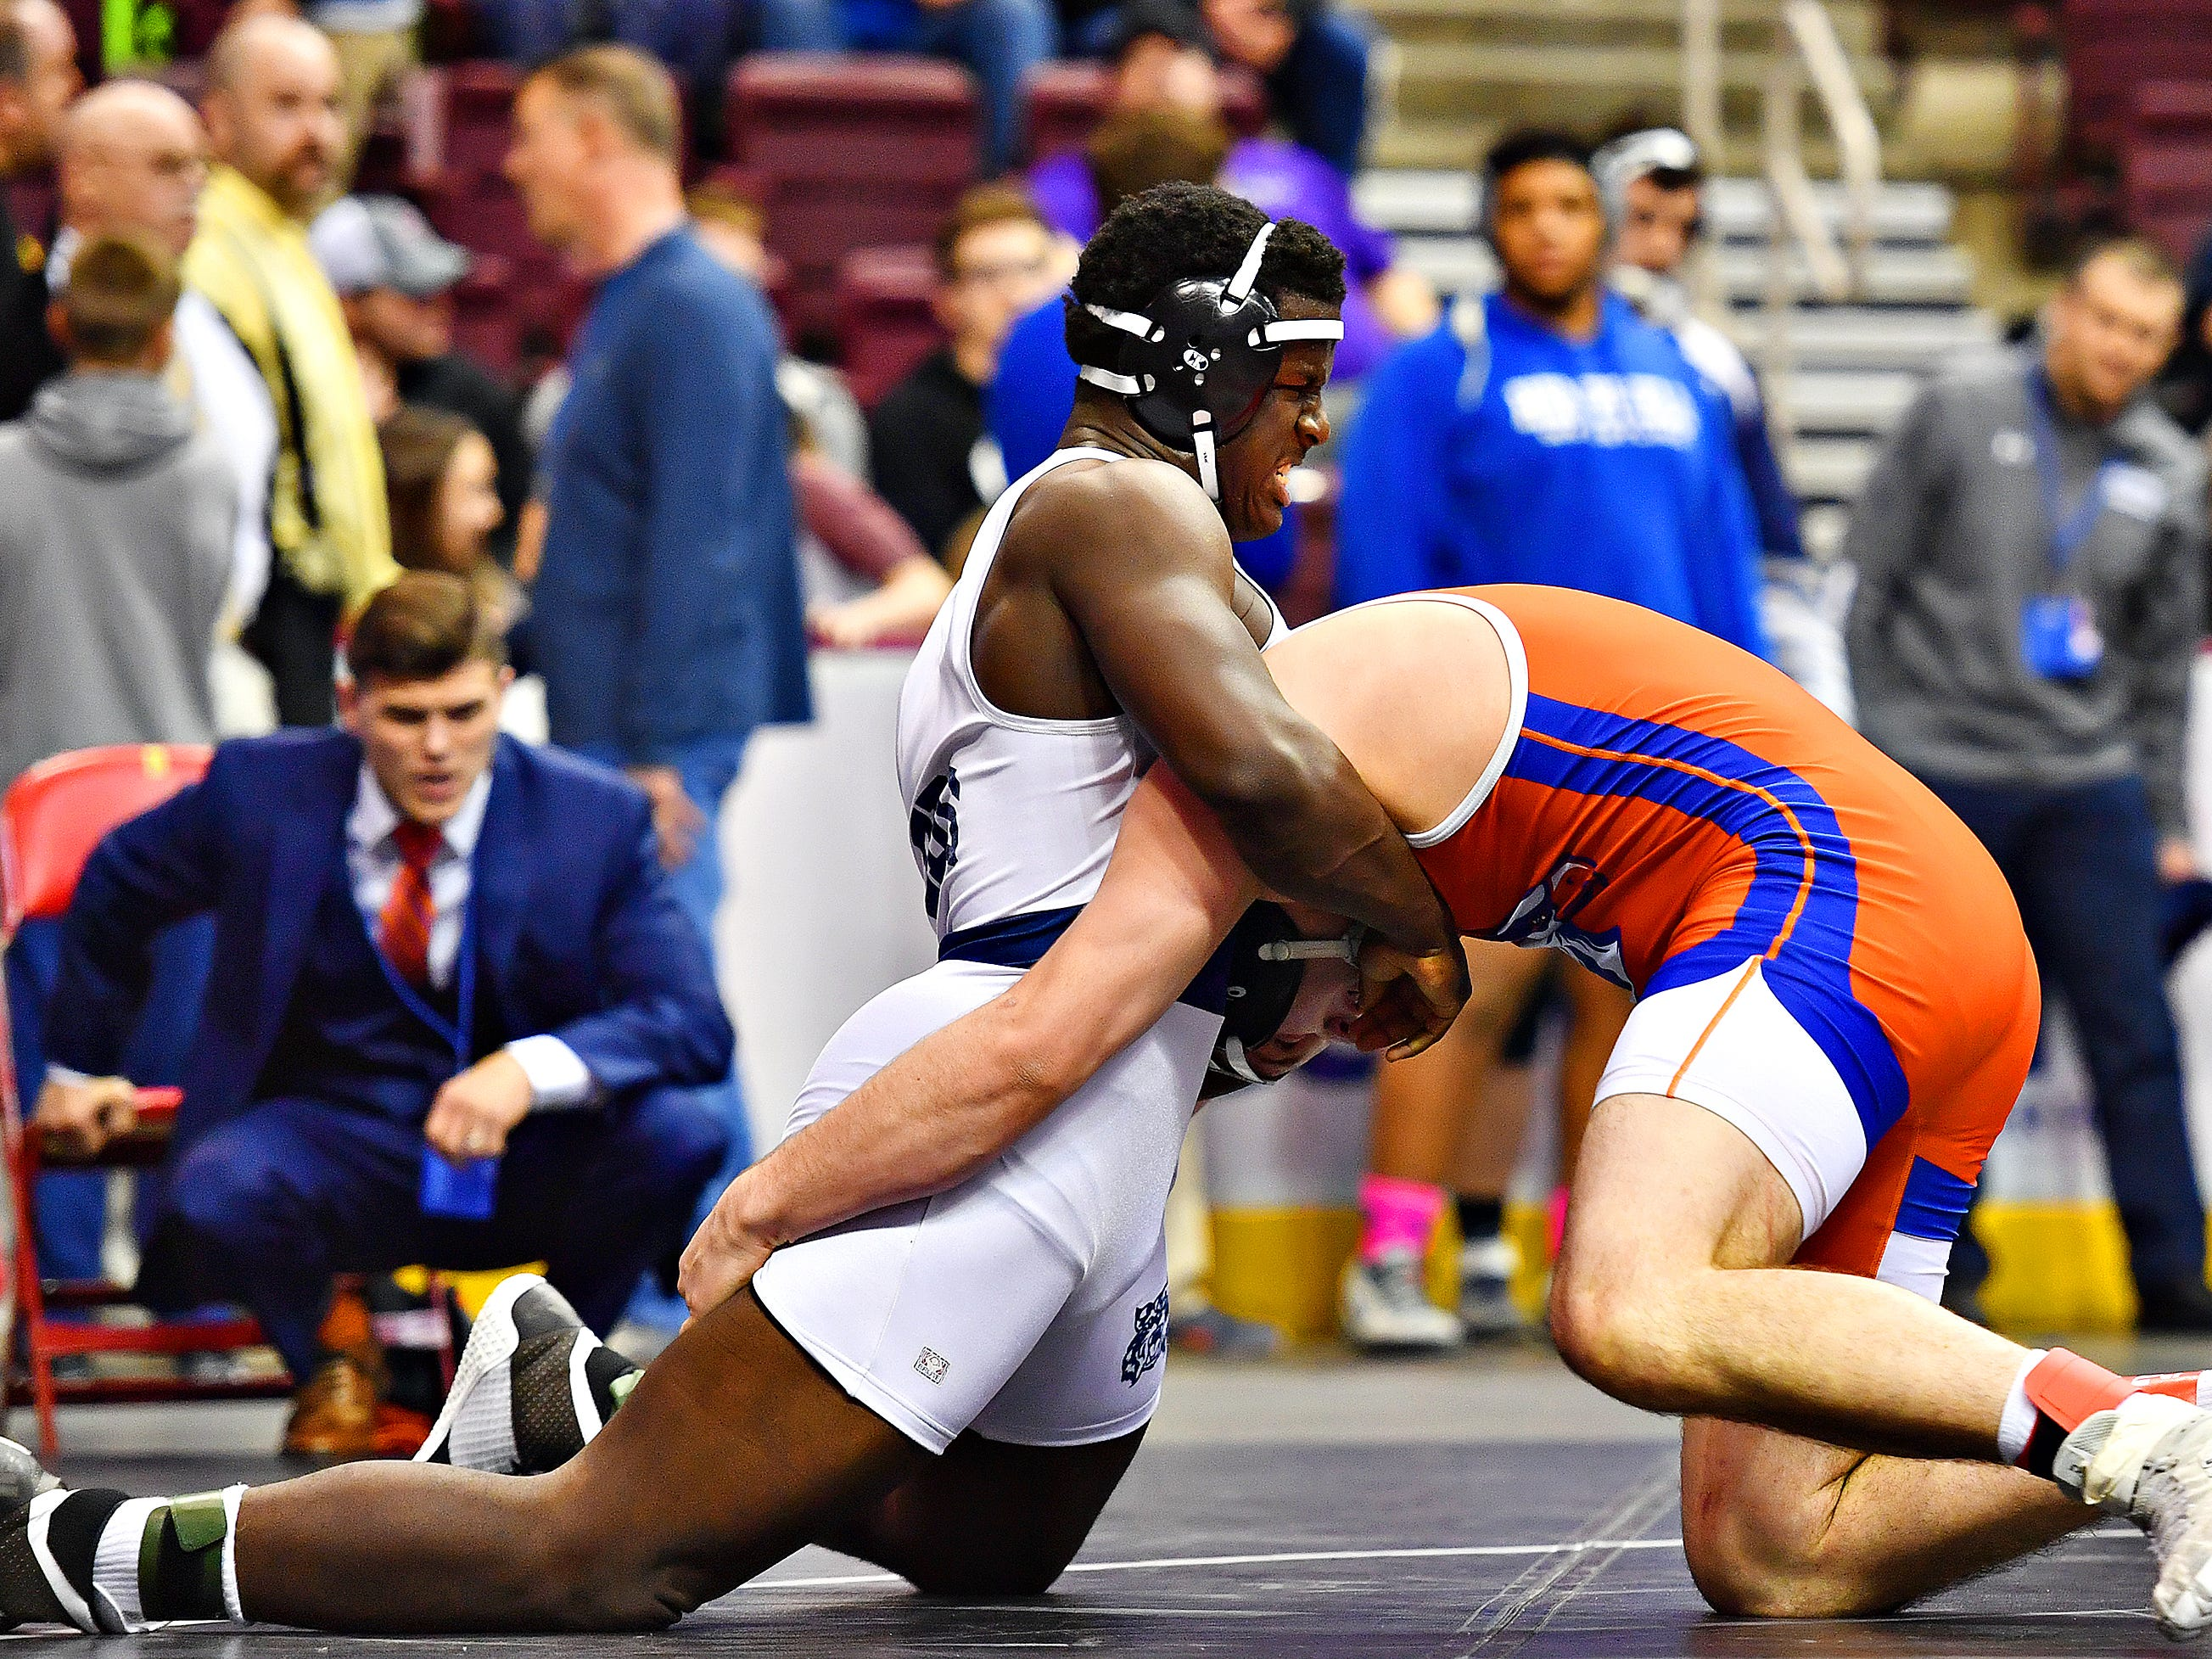 Dallastown's Jamal Brandon, left, wrestles Armstrong's Ogden Atwood in the 220 pound weight class during PIAA 3A Individual Wrestling Championships seventh place match at Giant Center in Hershey, Saturday, March 9, 2019. Brandon would win by decision 6-5. Dawn J. Sagert photo